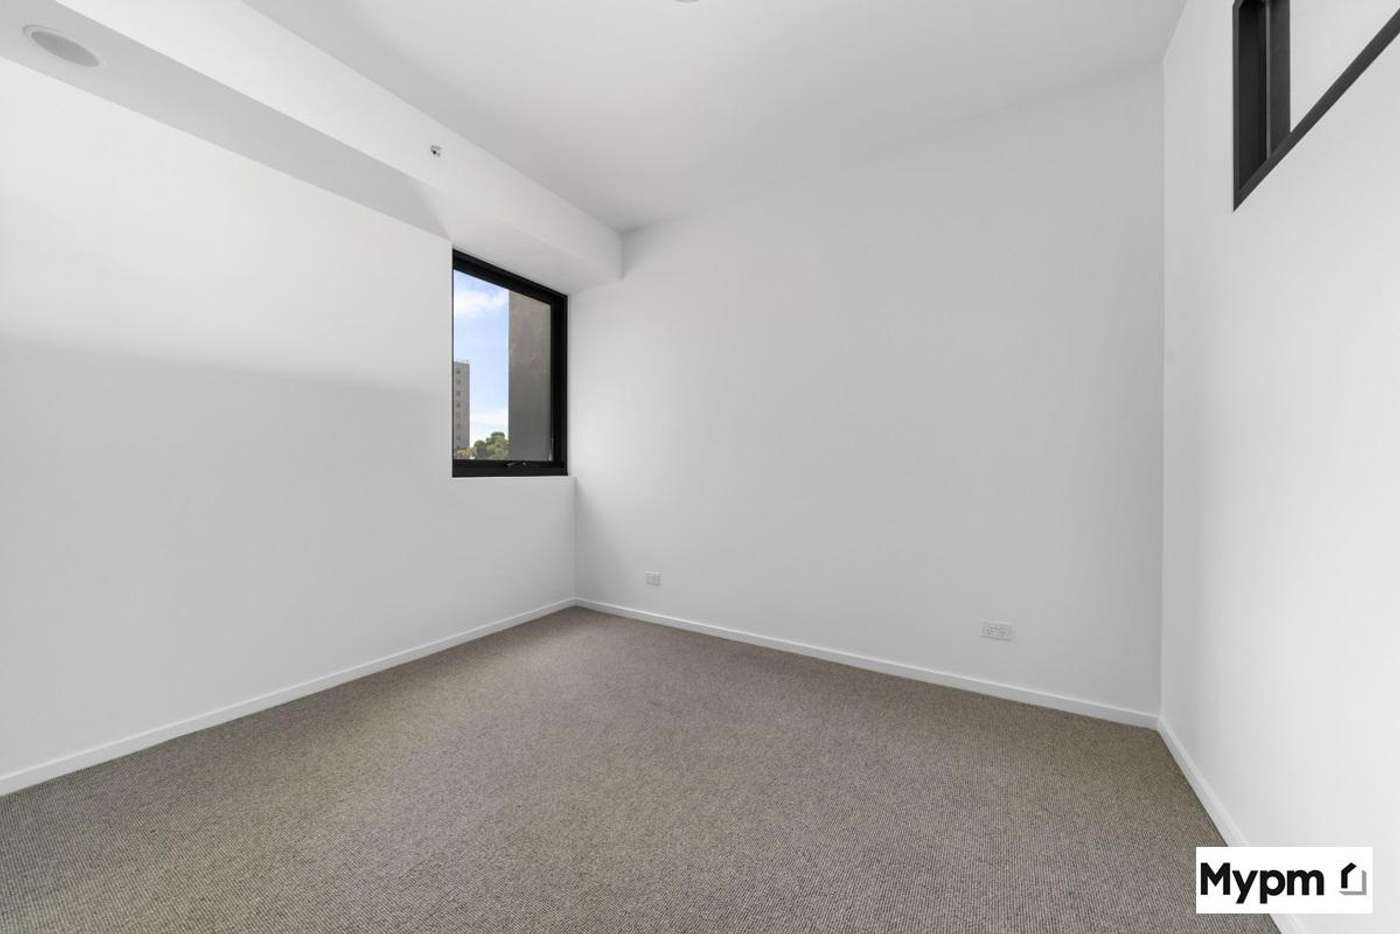 Sixth view of Homely apartment listing, 301/7 Carlton Street, Prahran VIC 3181